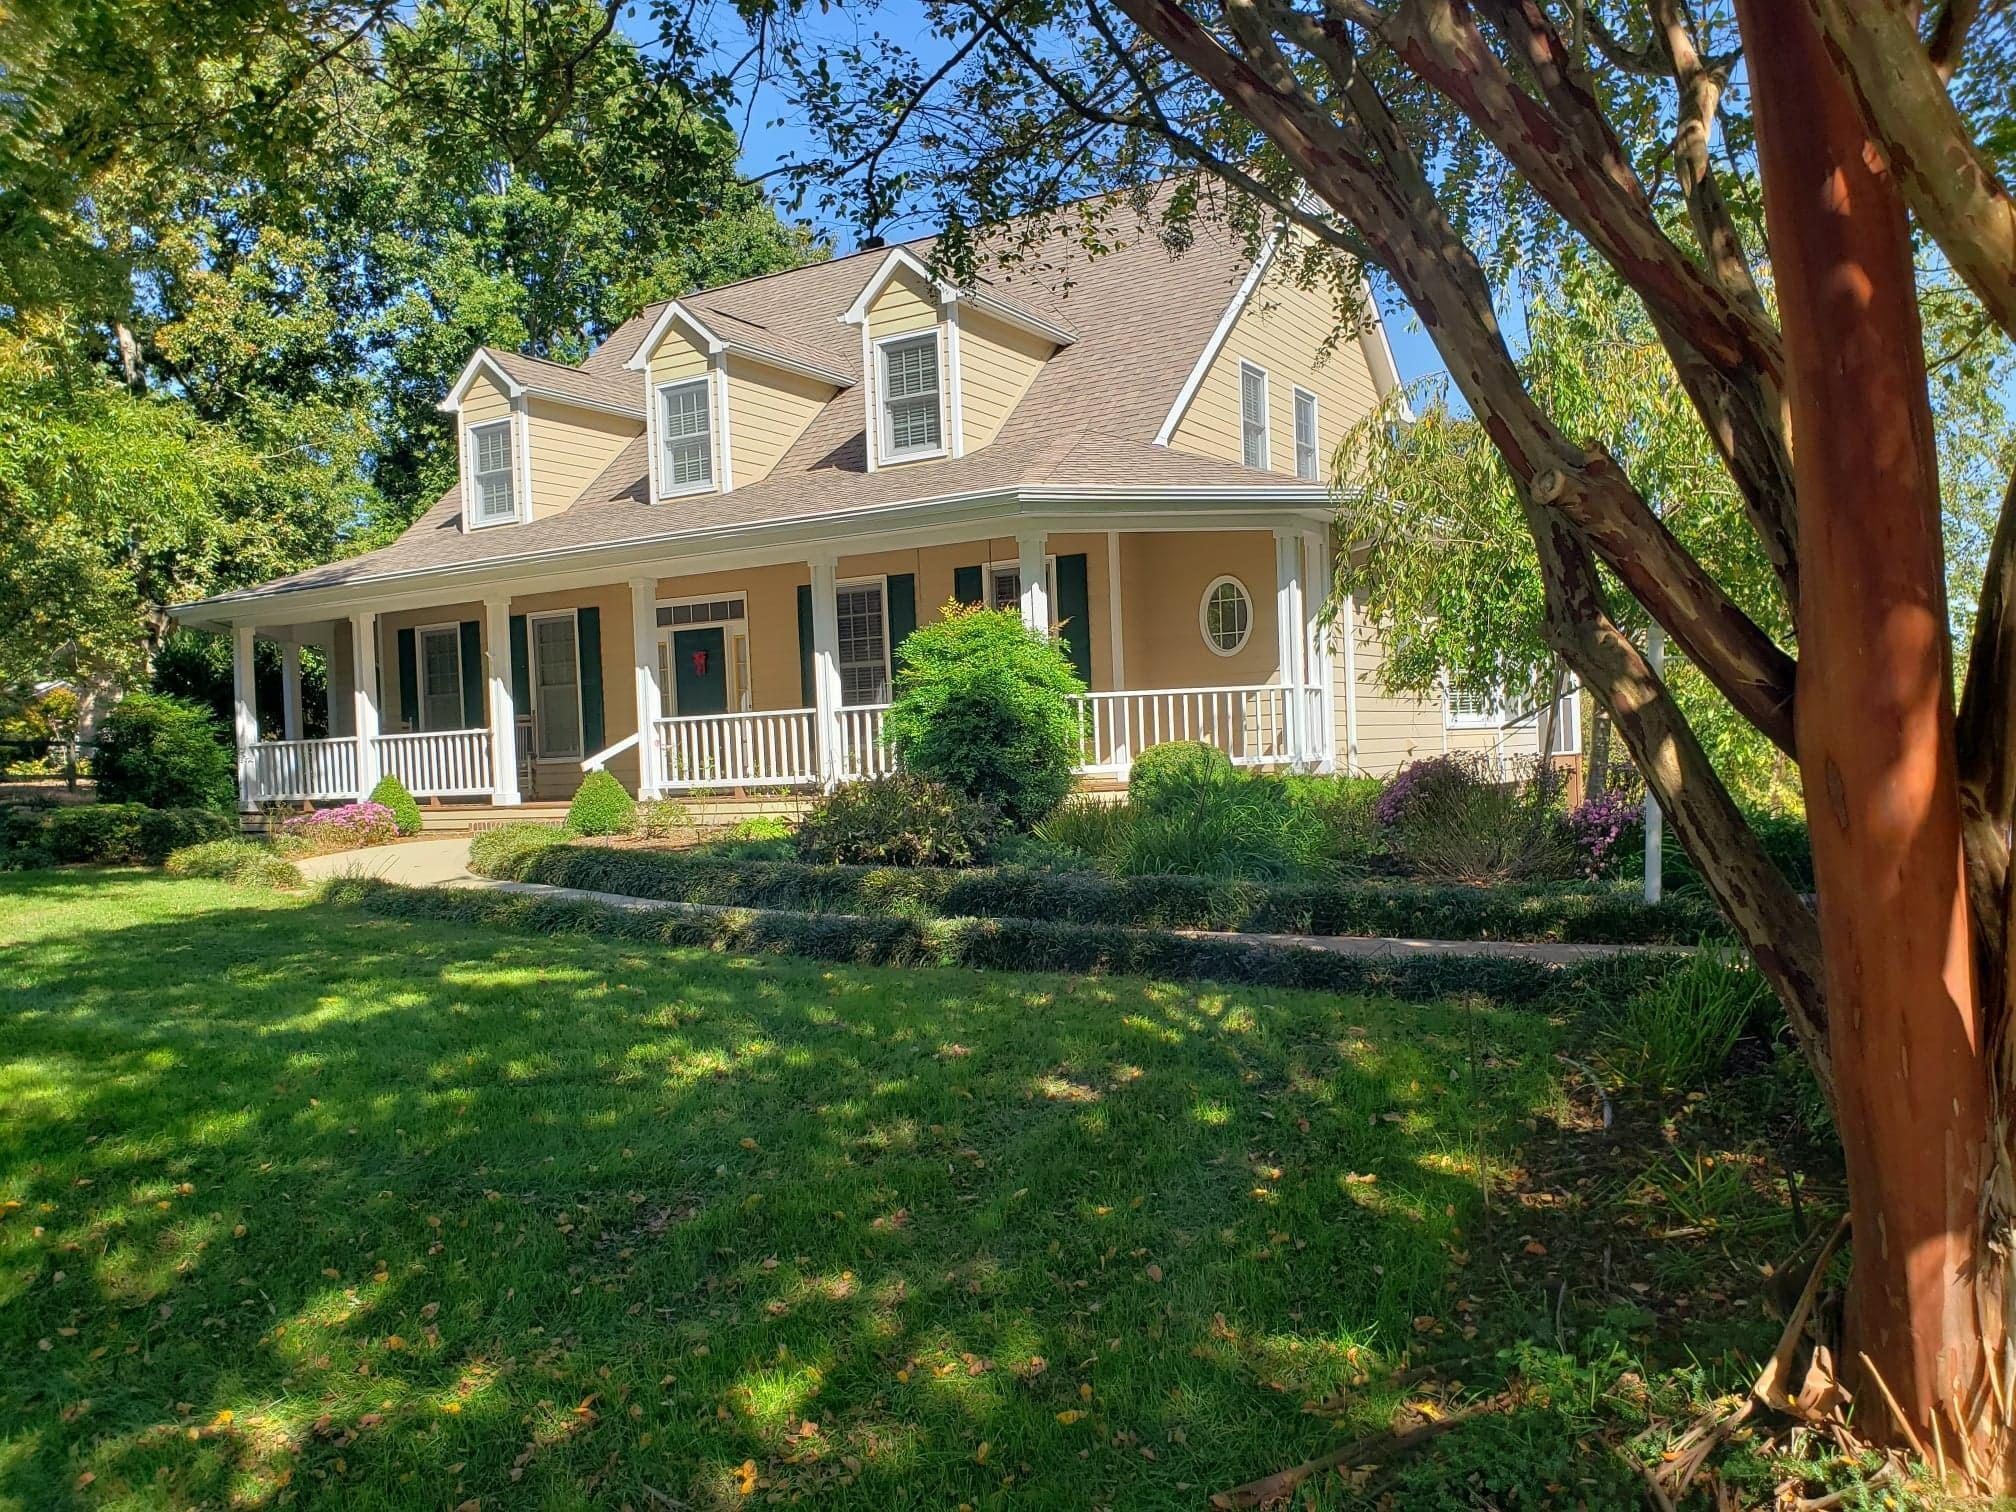 305 Goose Point, Spring City, Tennessee 37381, 4 Bedrooms Bedrooms, ,4 BathroomsBathrooms,Single Family,For Sale,Goose,1133121